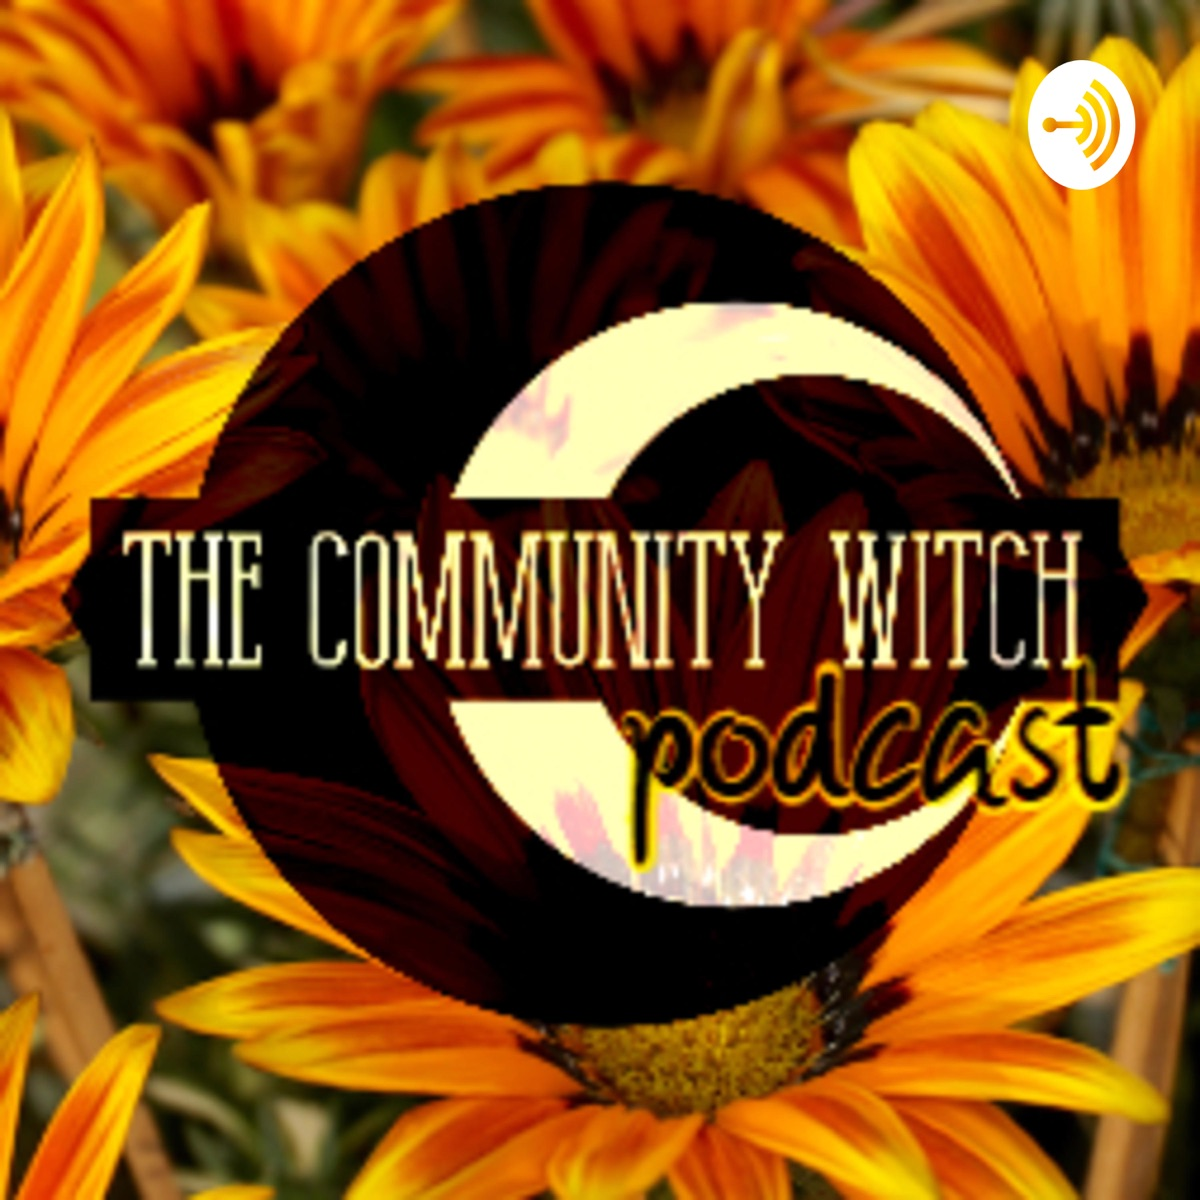 The Community Witch Podcast